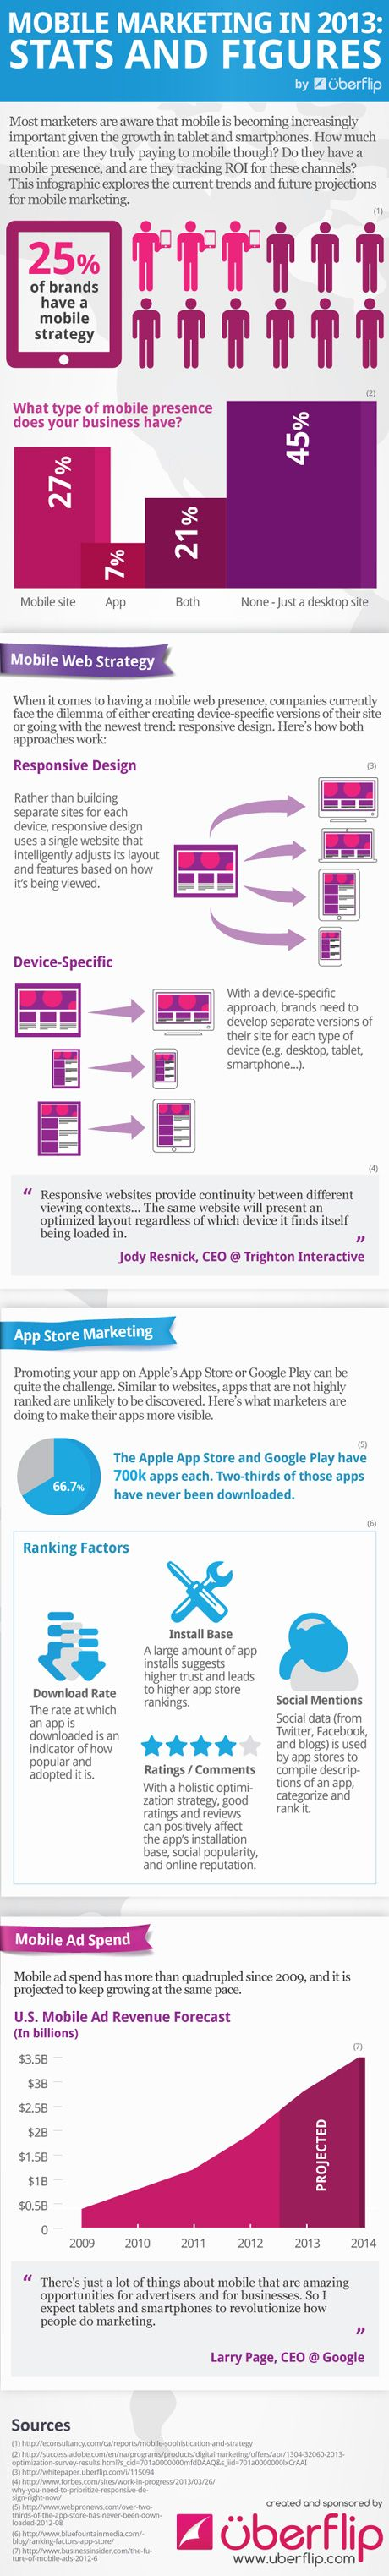 mobile marketing about to revolutionize marketing (according to Larry Page) and only one third of all apps (700k) is installes at least once